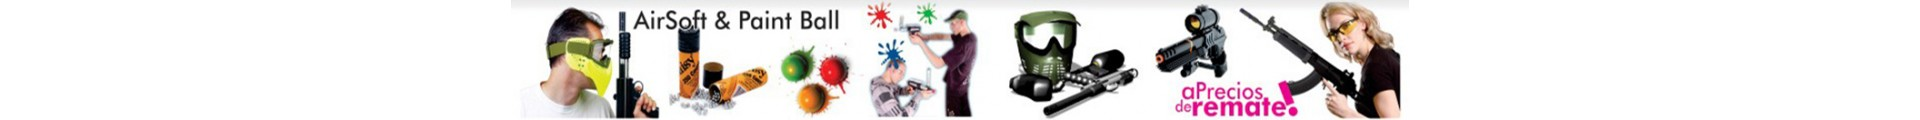 AirSoft & PaintBall